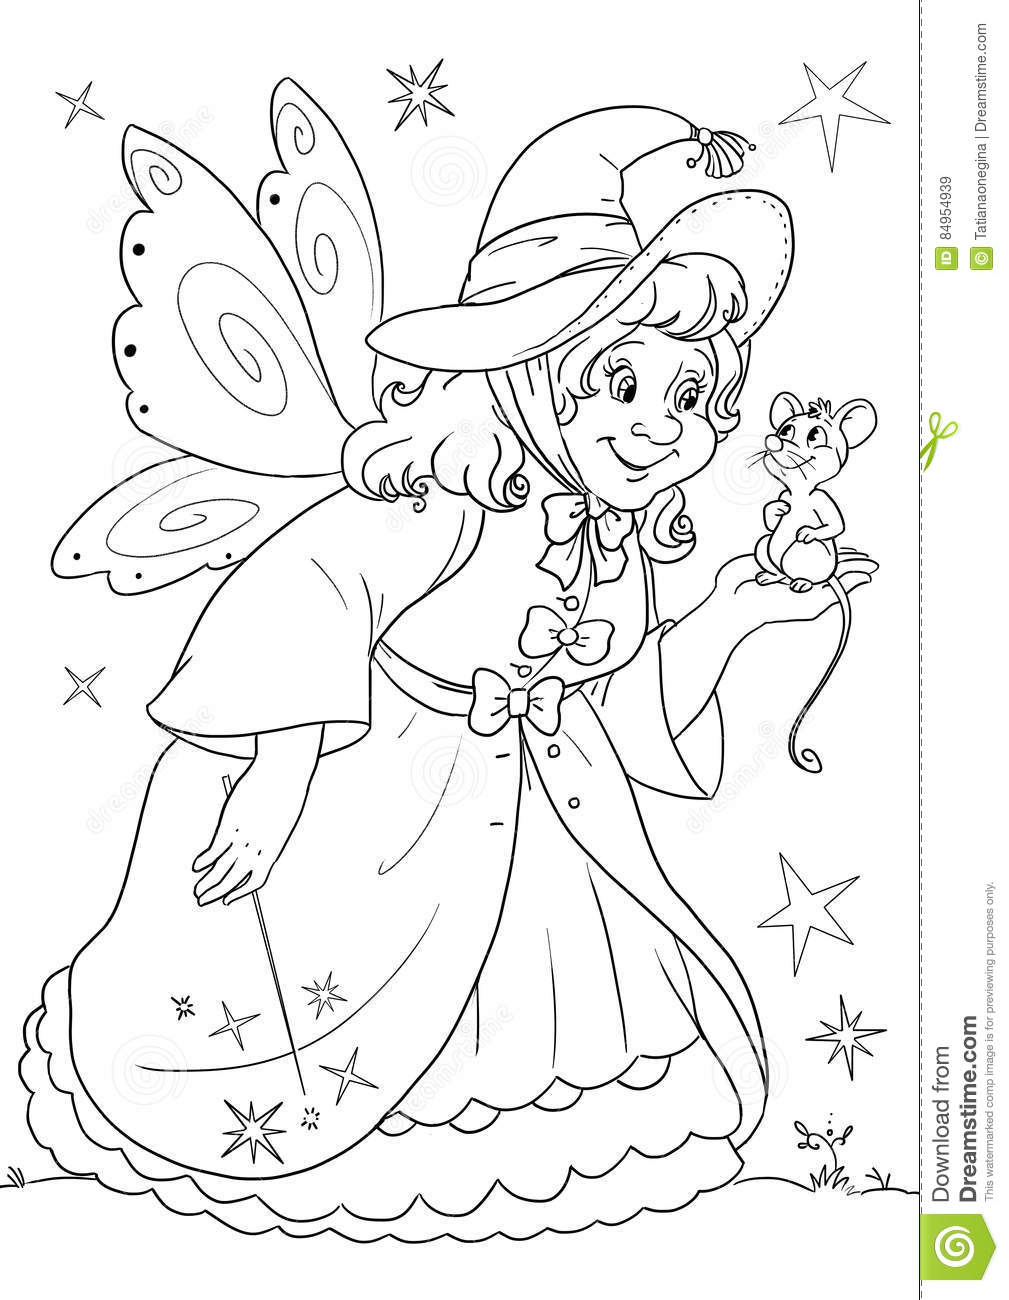 Cinderella and Her Fairy Godmother Coloring Page | Woo! Jr. Kids ... | 1300x1009